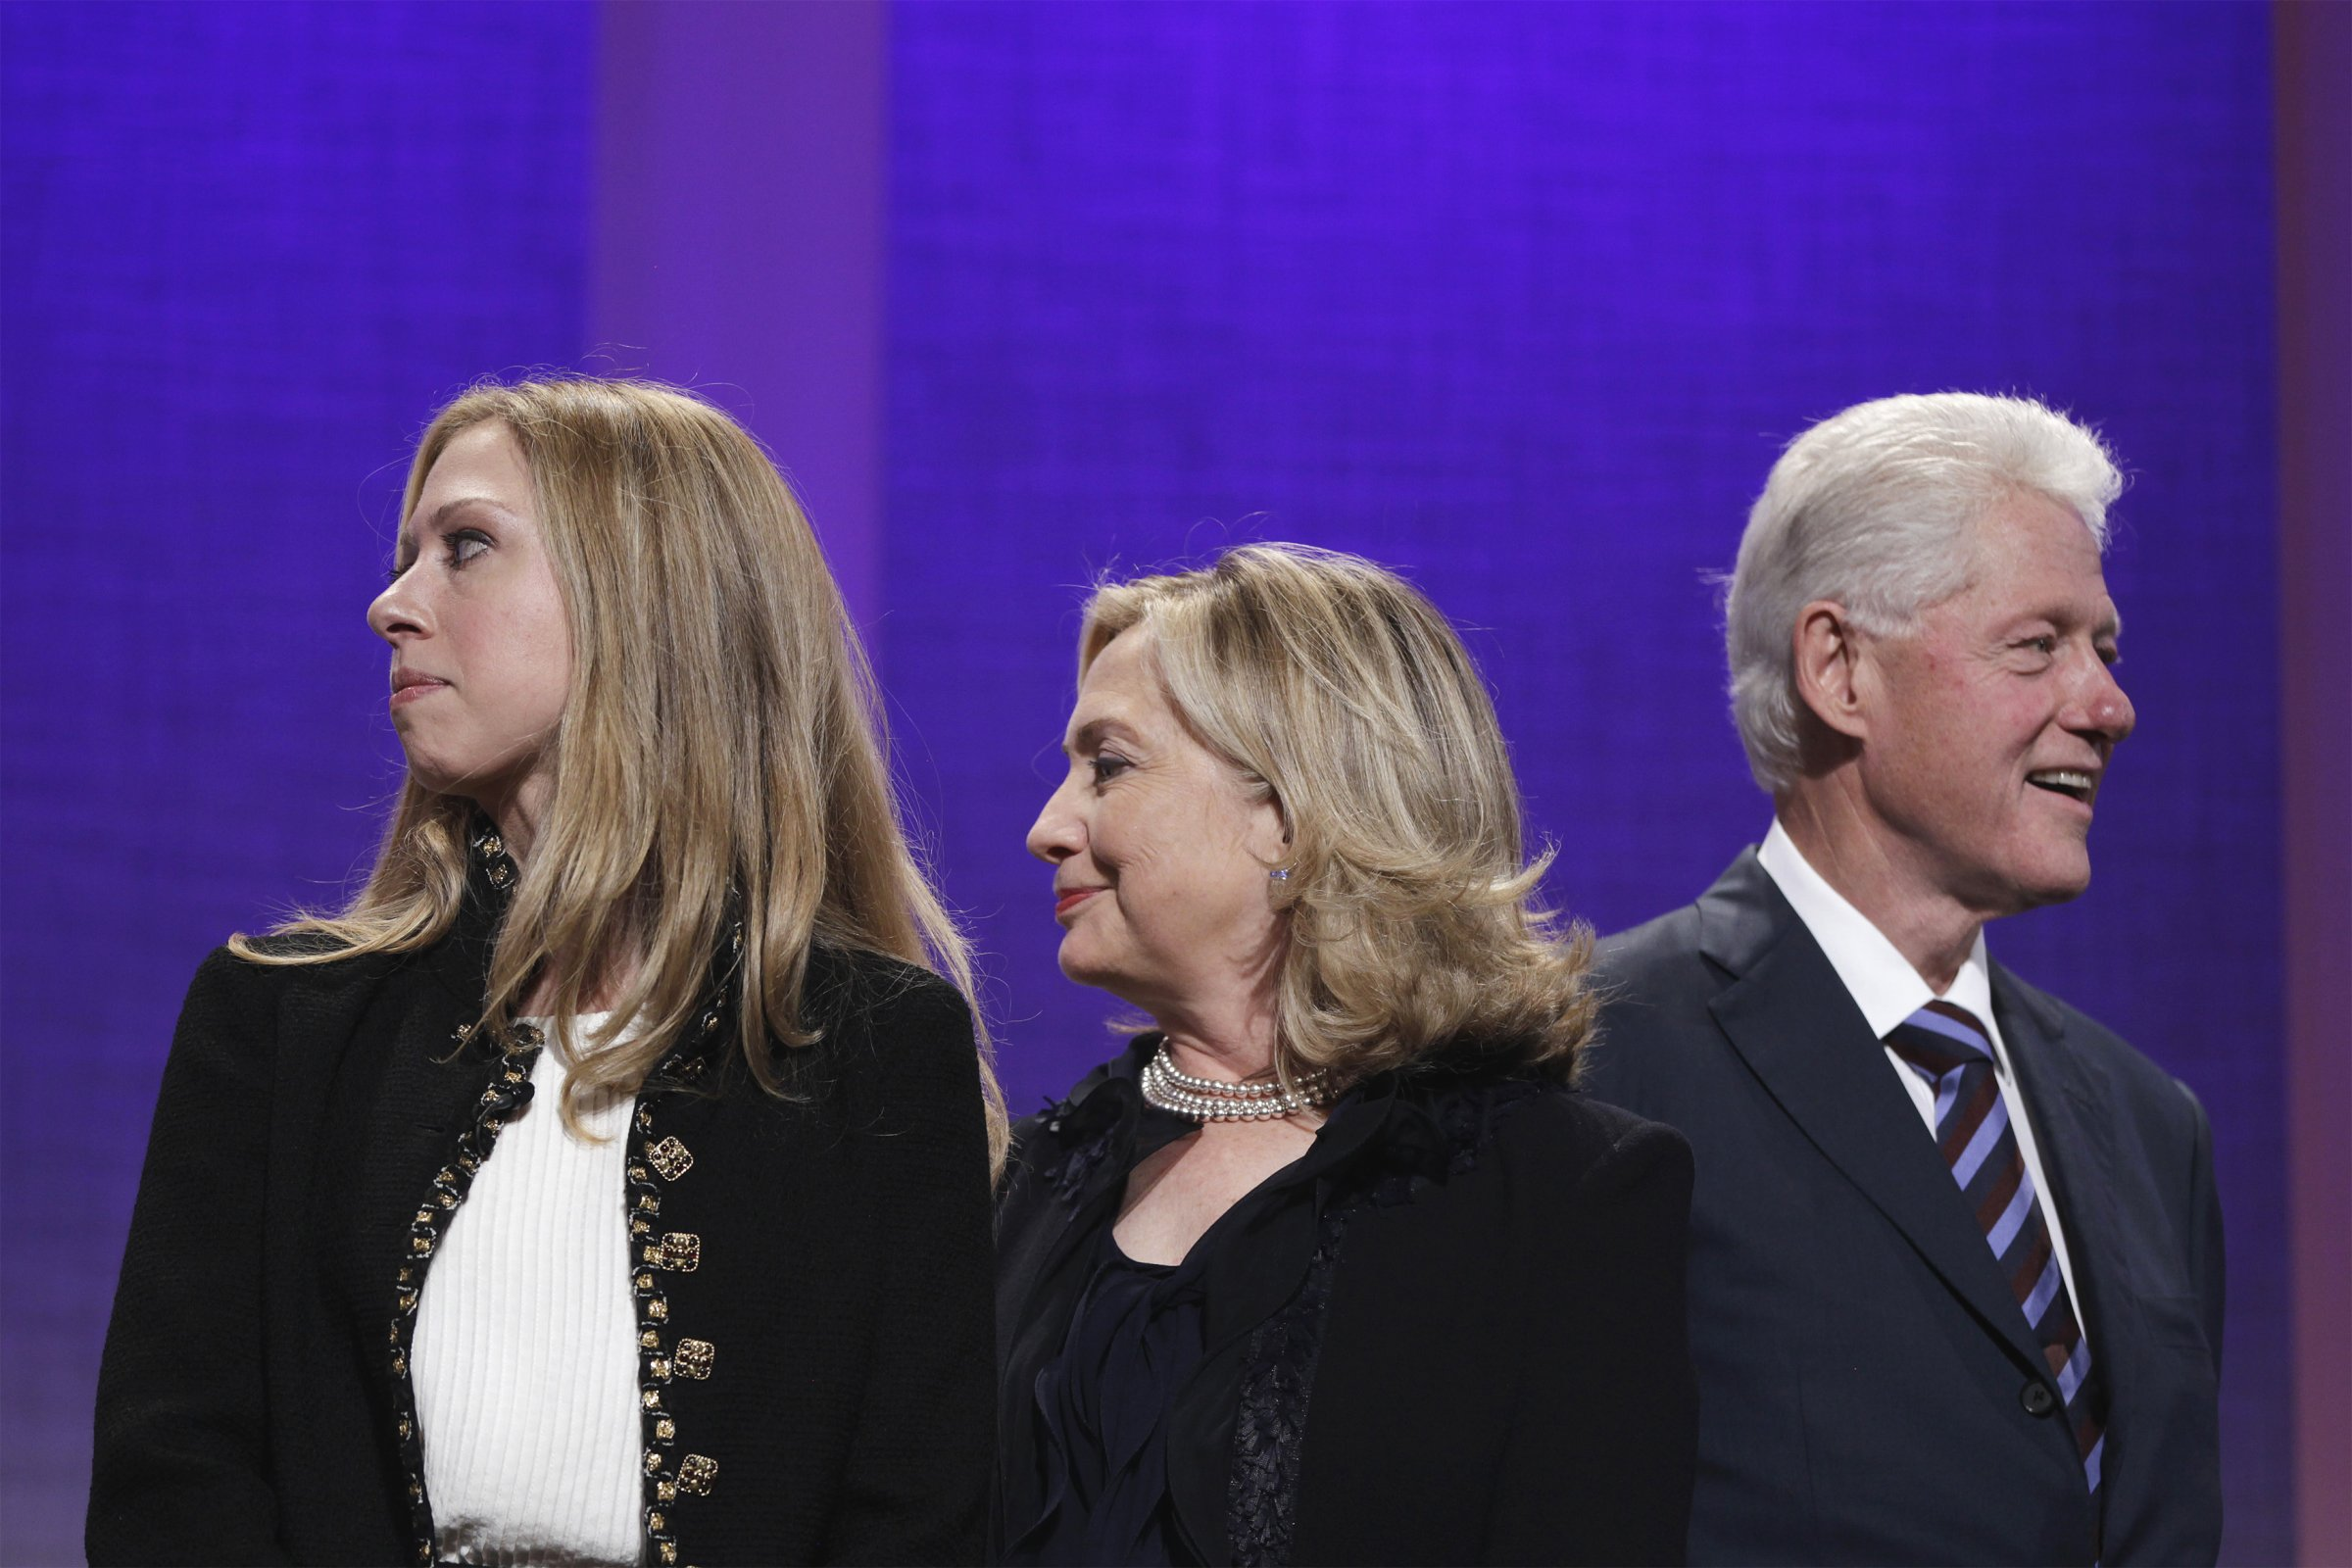 THE CLINTONS - BACK ON THE ROAD AGAIN!